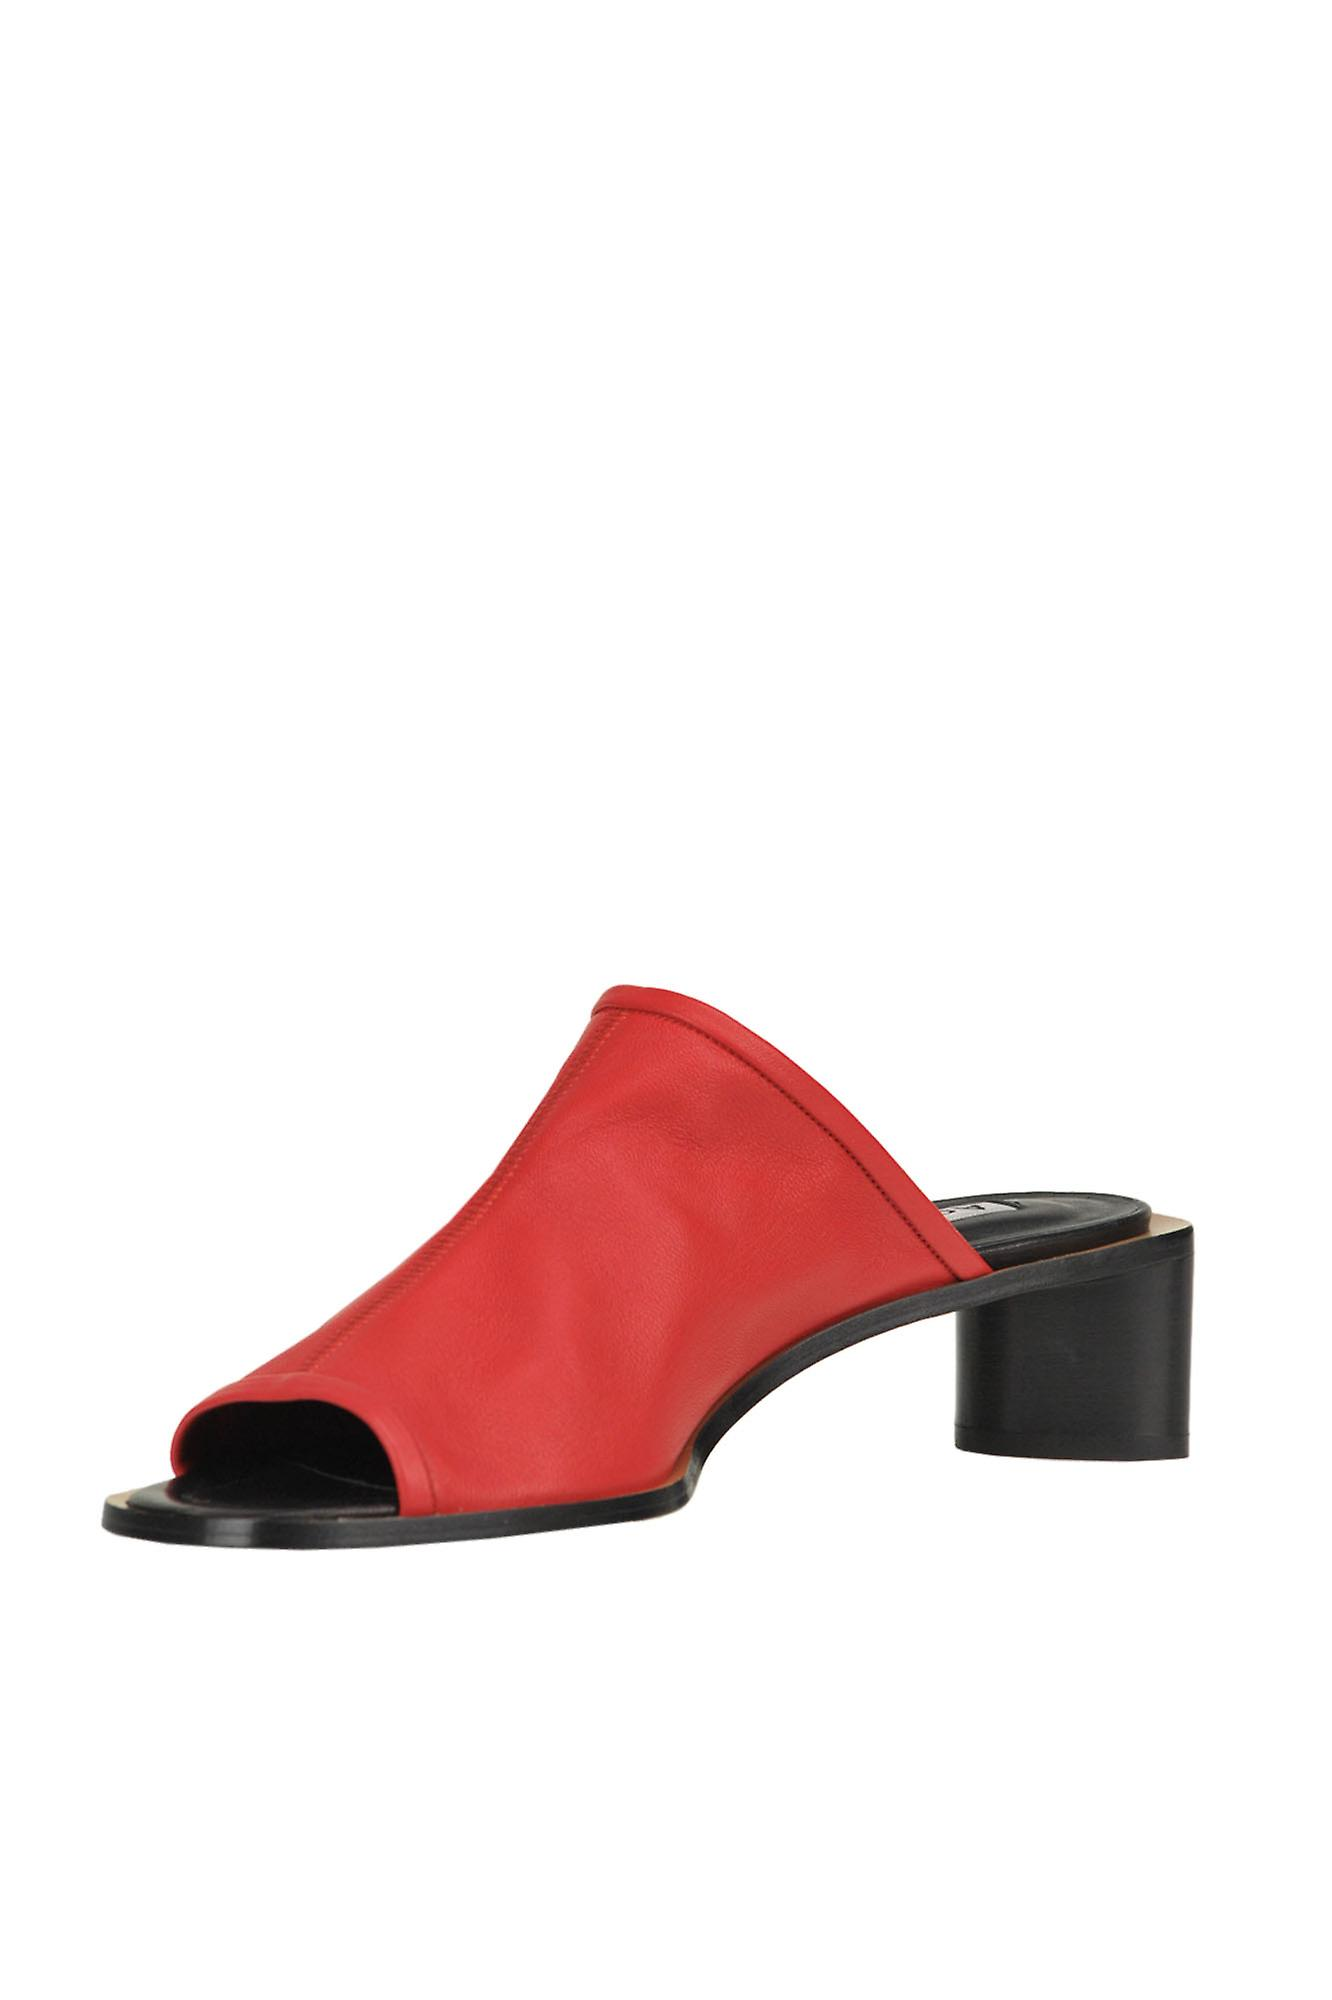 Acne Studios Ezgl151031 Women's Red Leather Sandals